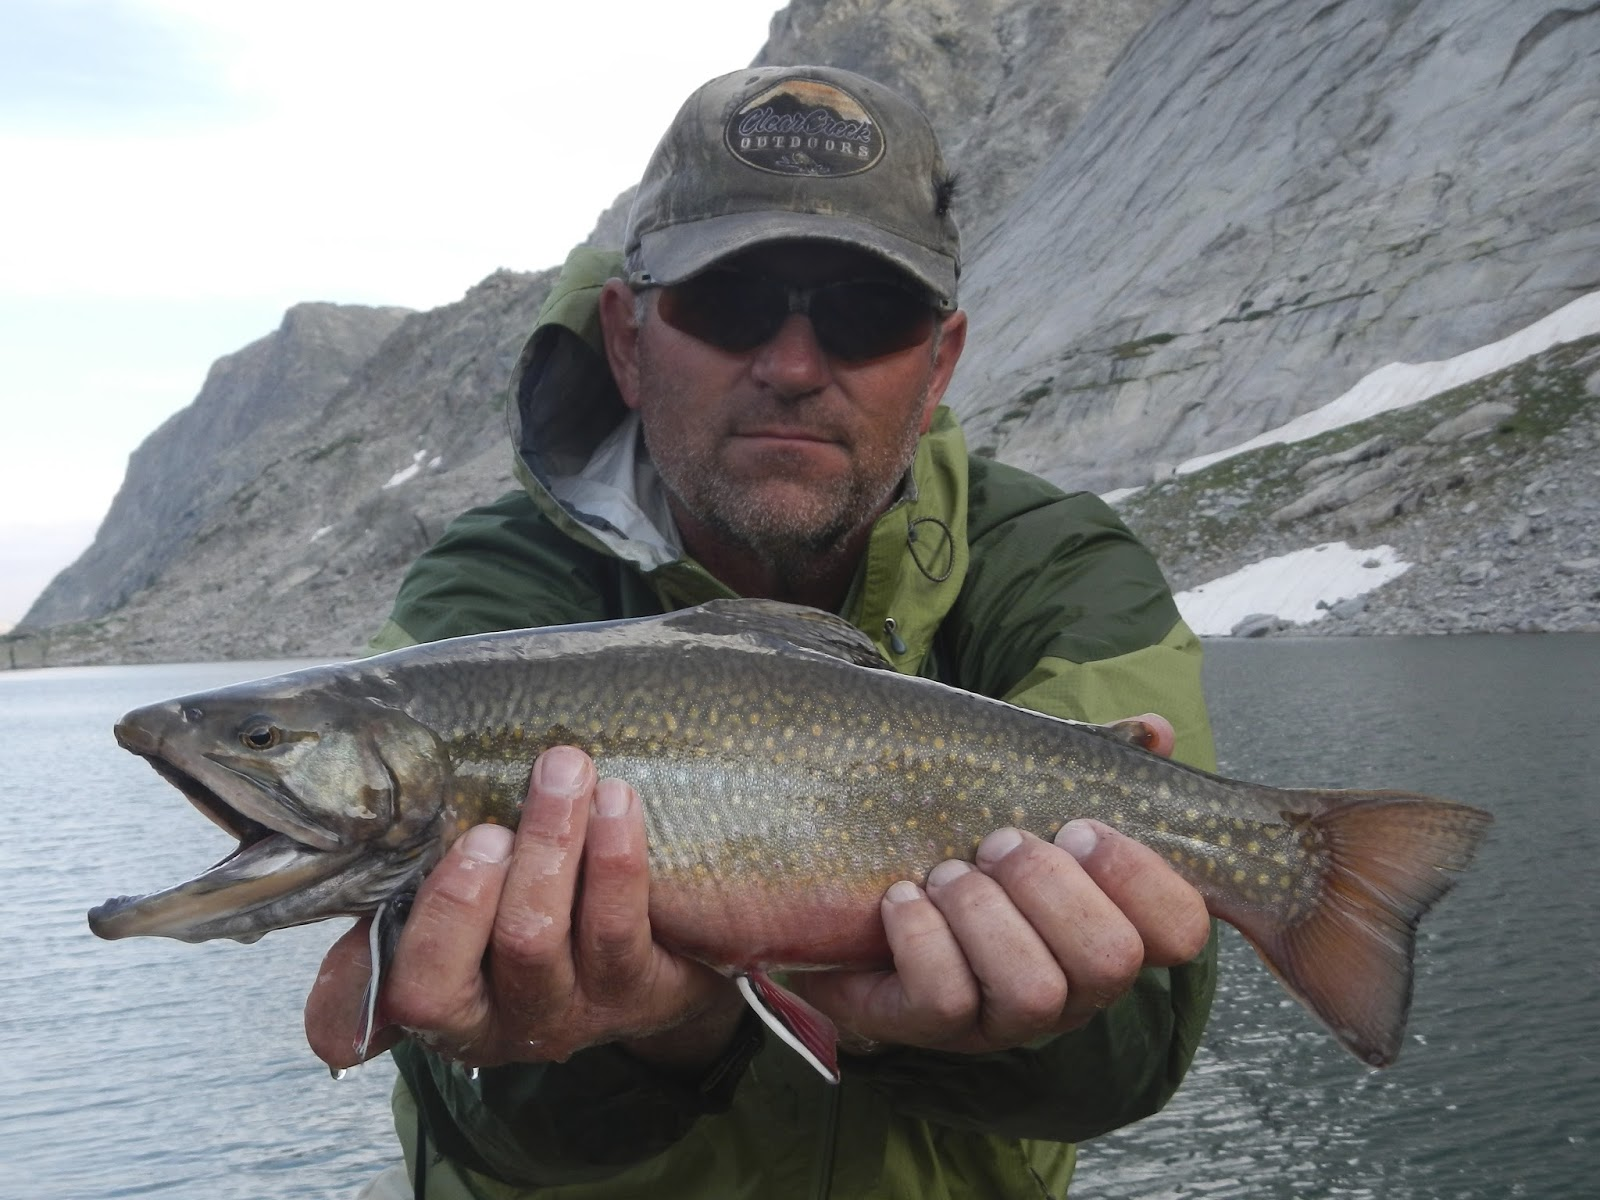 Colorado fly fishing blog wind river fish pics for Fishing in the wind